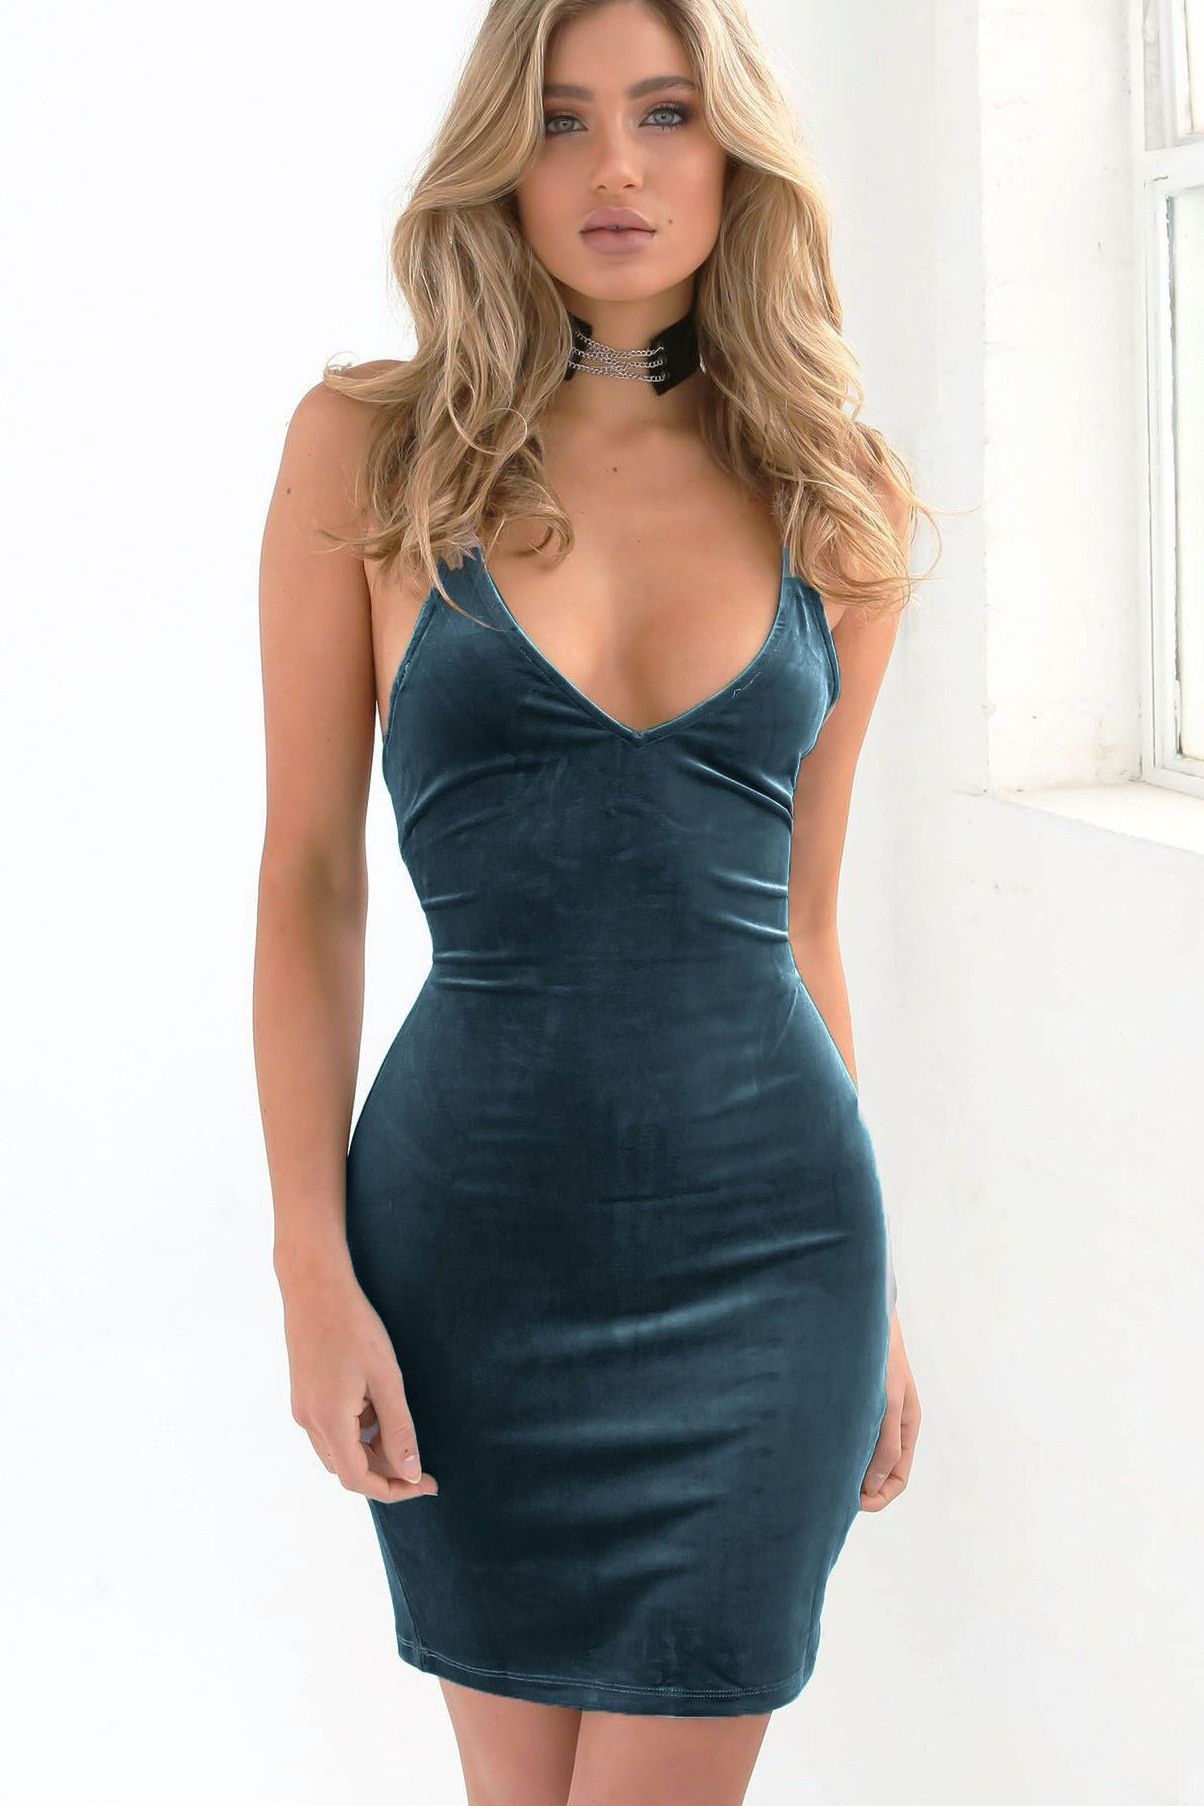 Spaghetti Strap V-neck Sleeveless Solid Sheath Short Dress | Pinterest